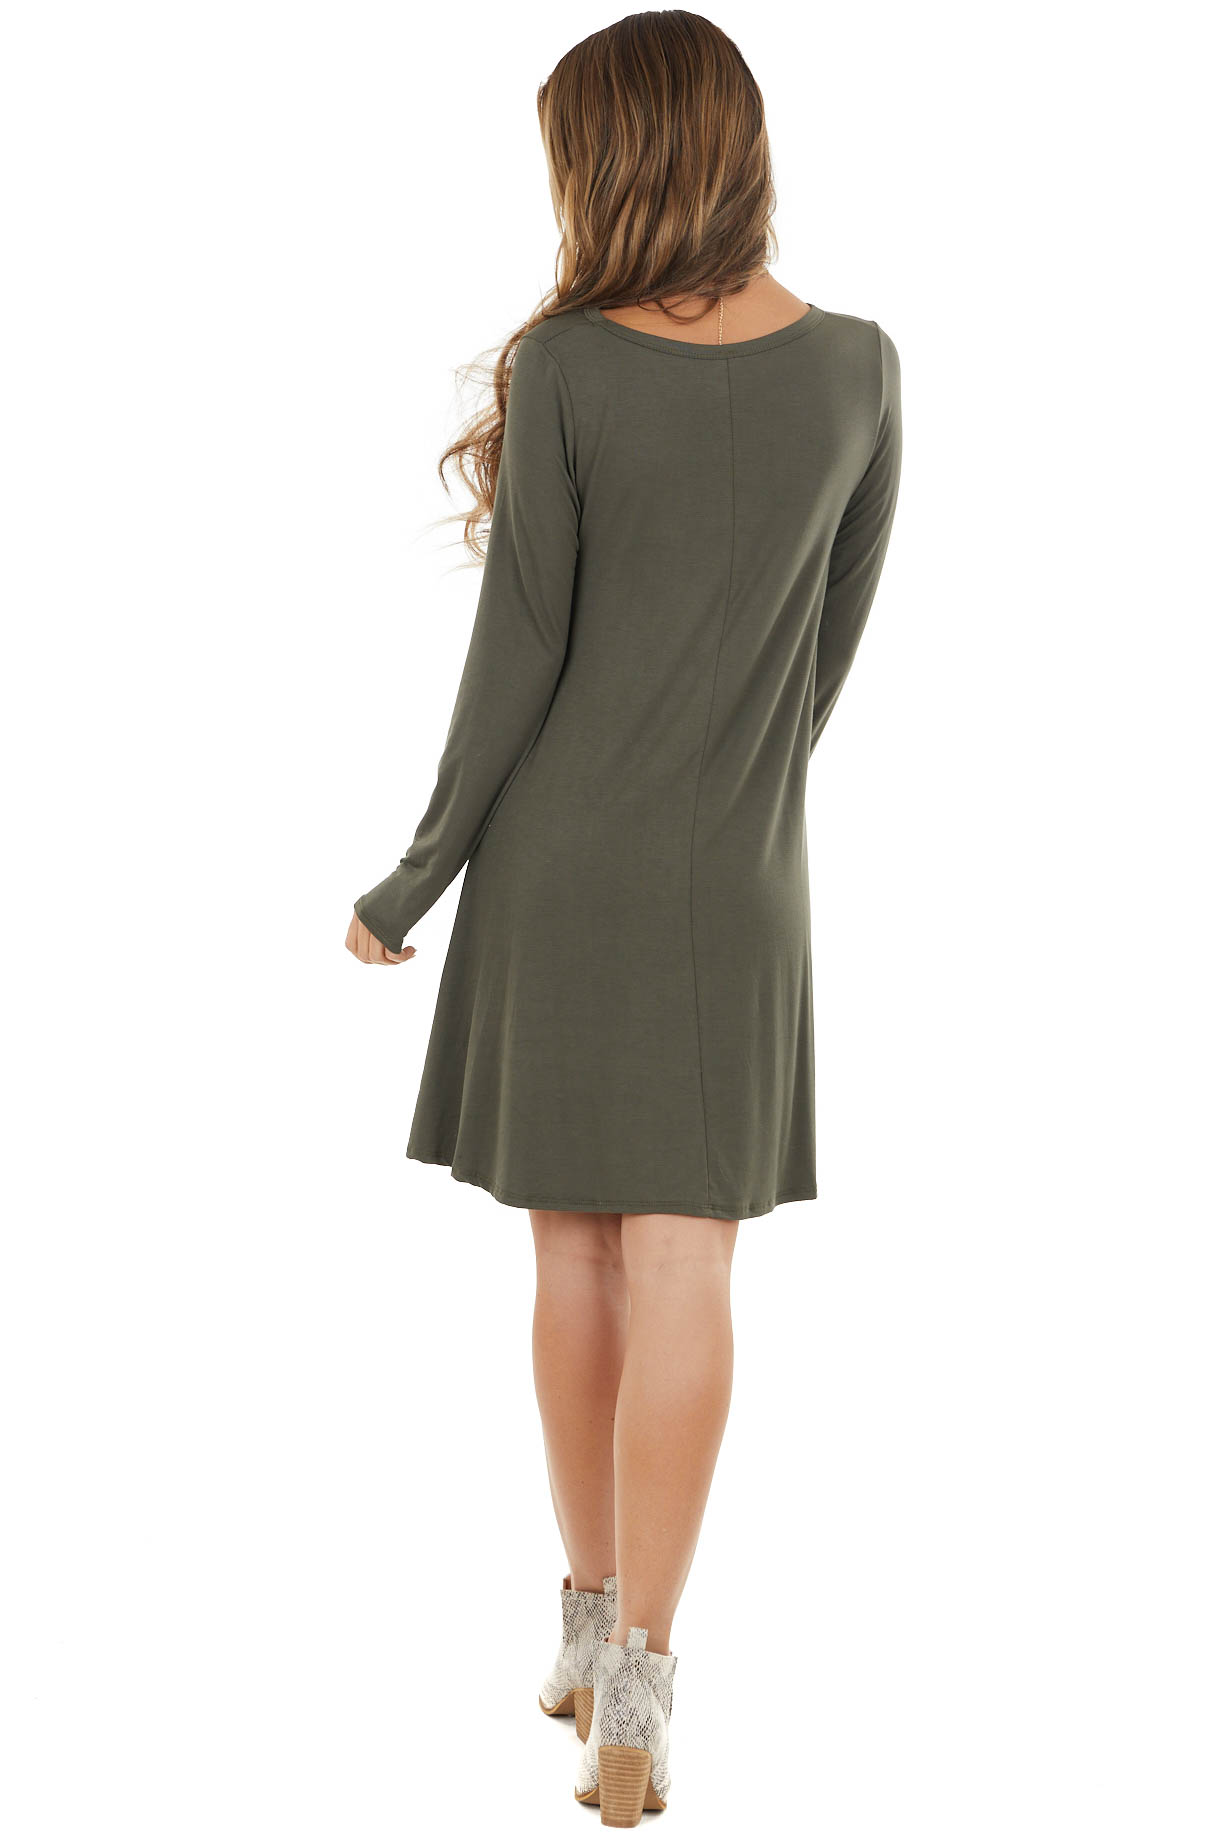 Olive Long Sleeve Mini Shift Dress with Side Pockets